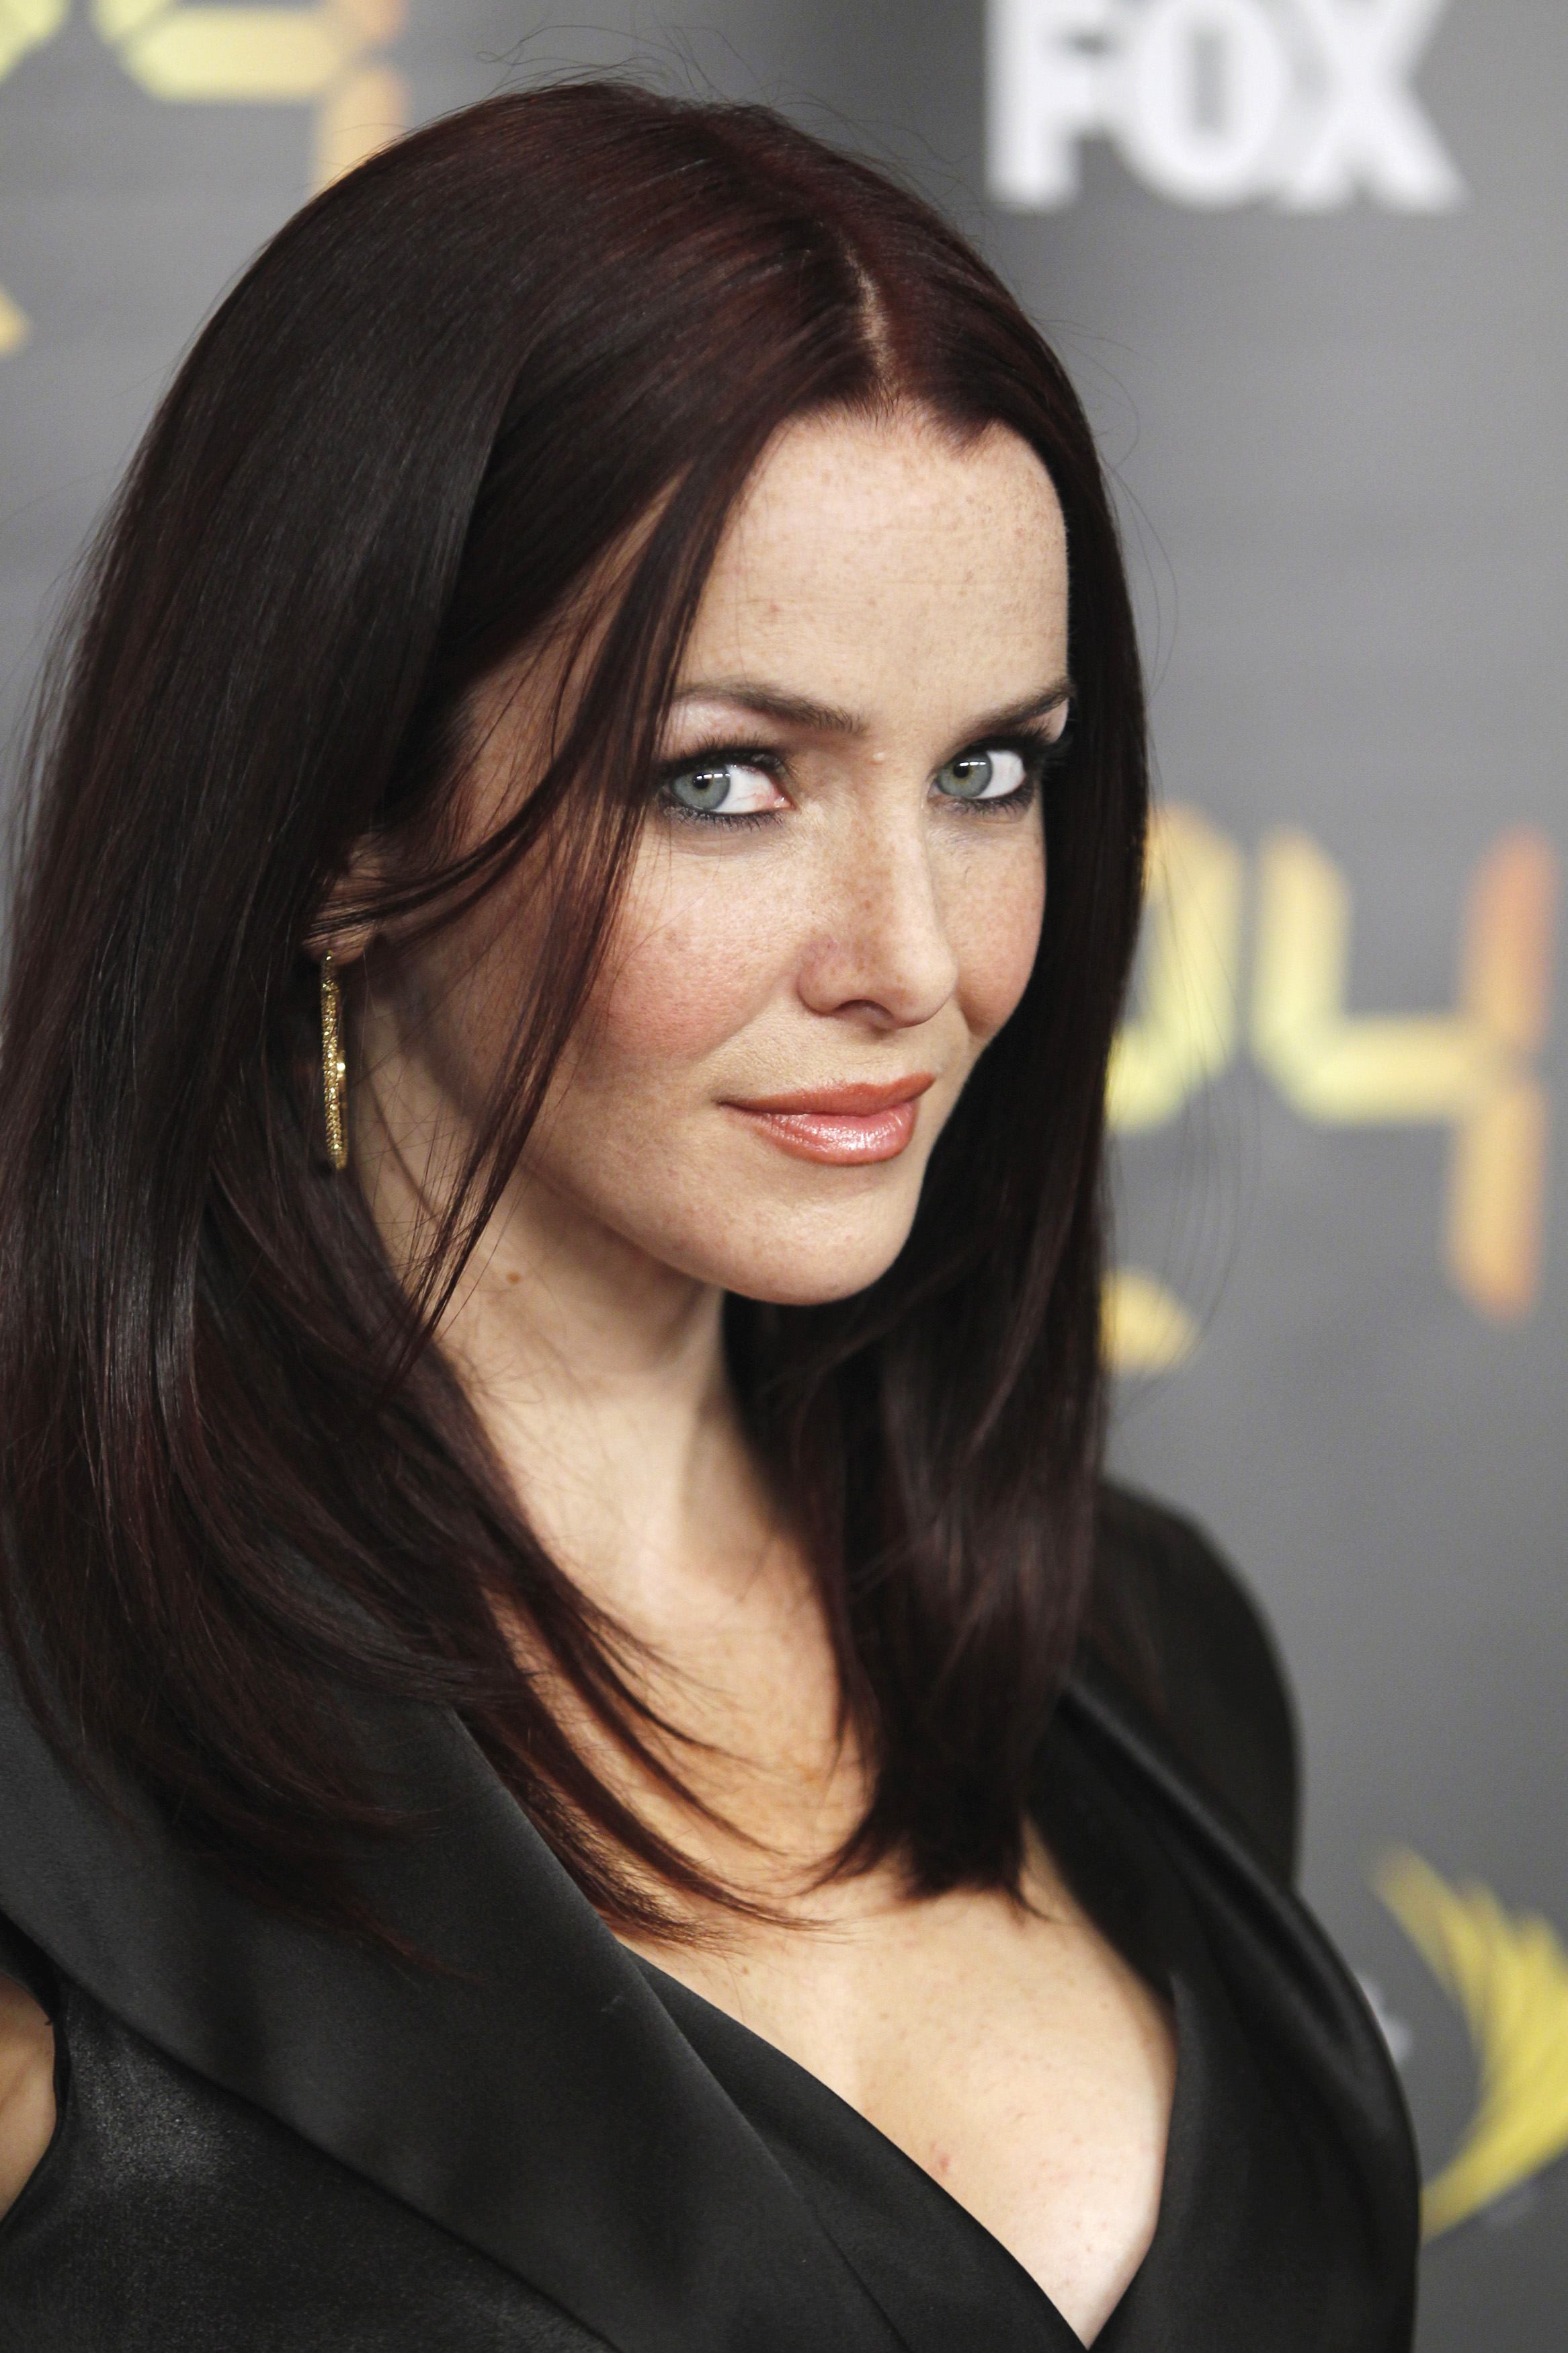 Annie Wersching Alchetron The Free Social Encyclopedia